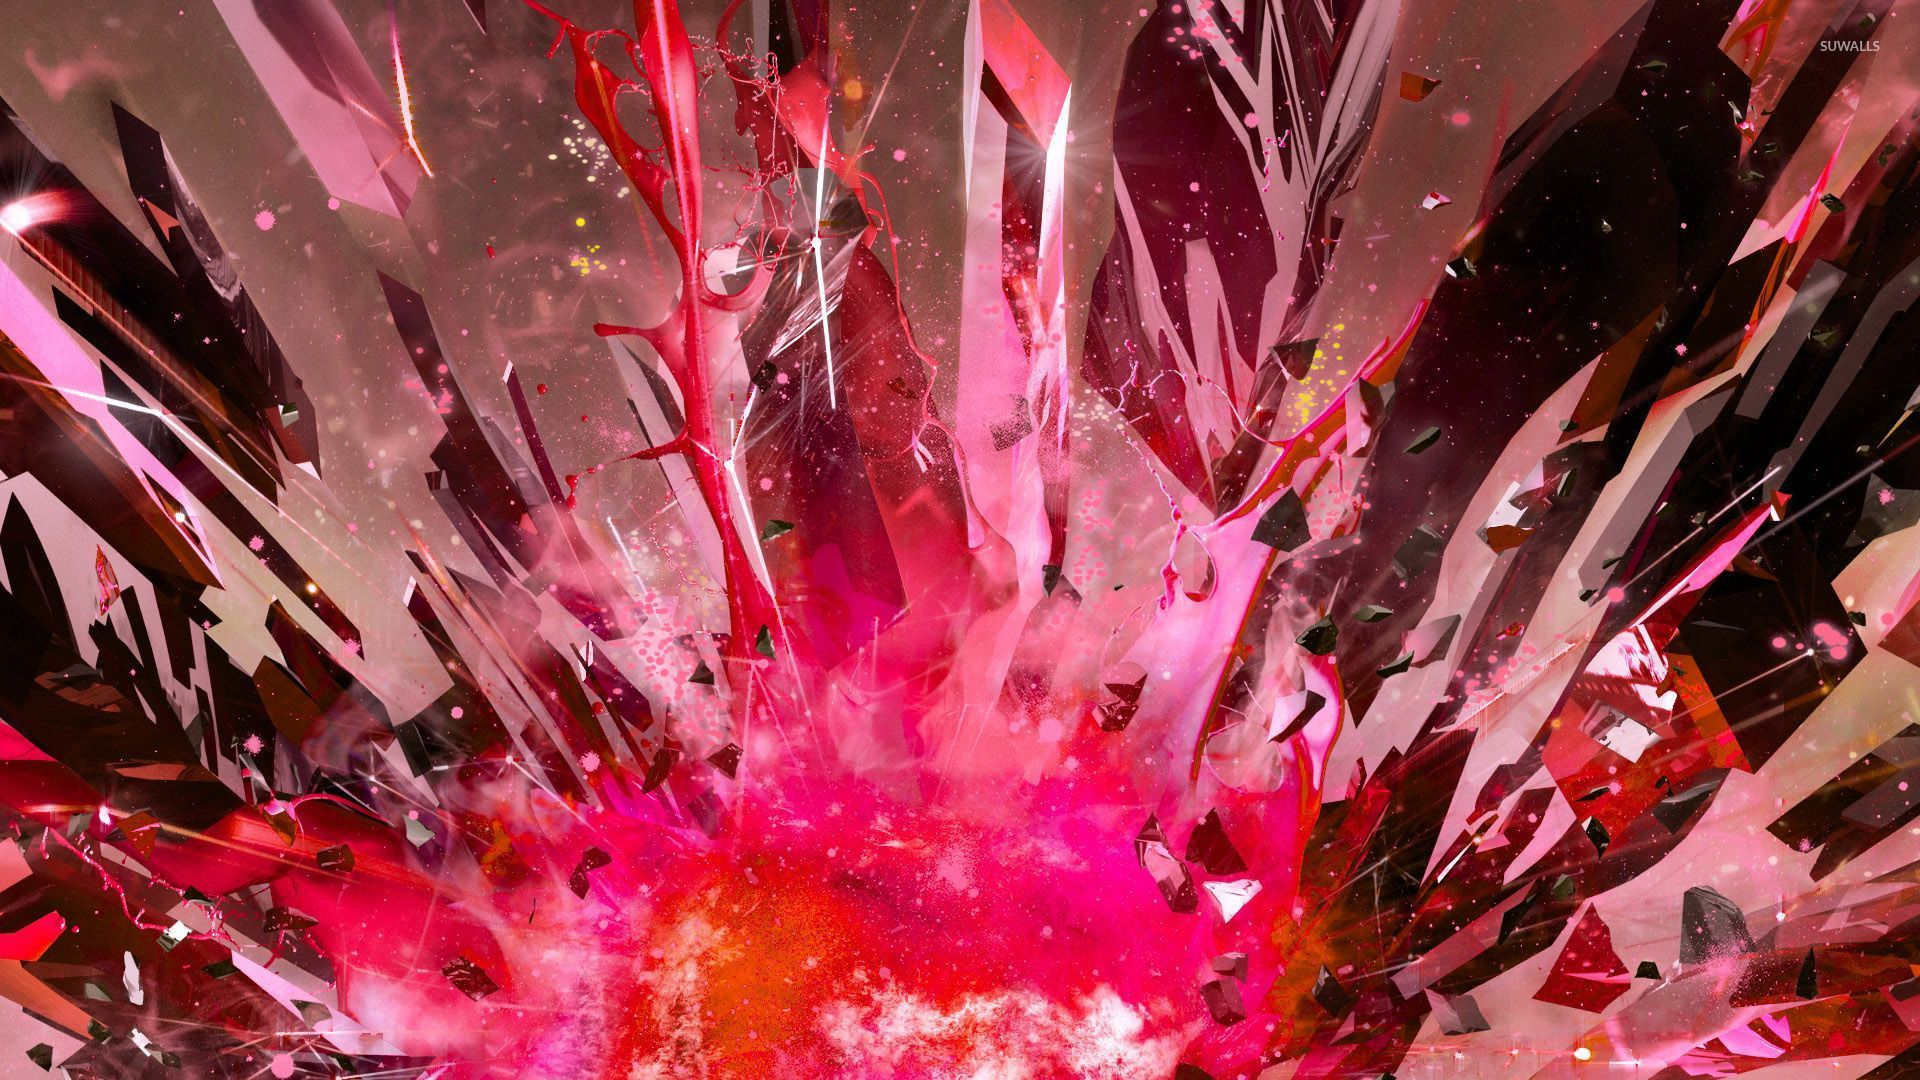 Pink exploding crystals wallpaper 3d wallpapers 29973 for 3d wallpaper pink